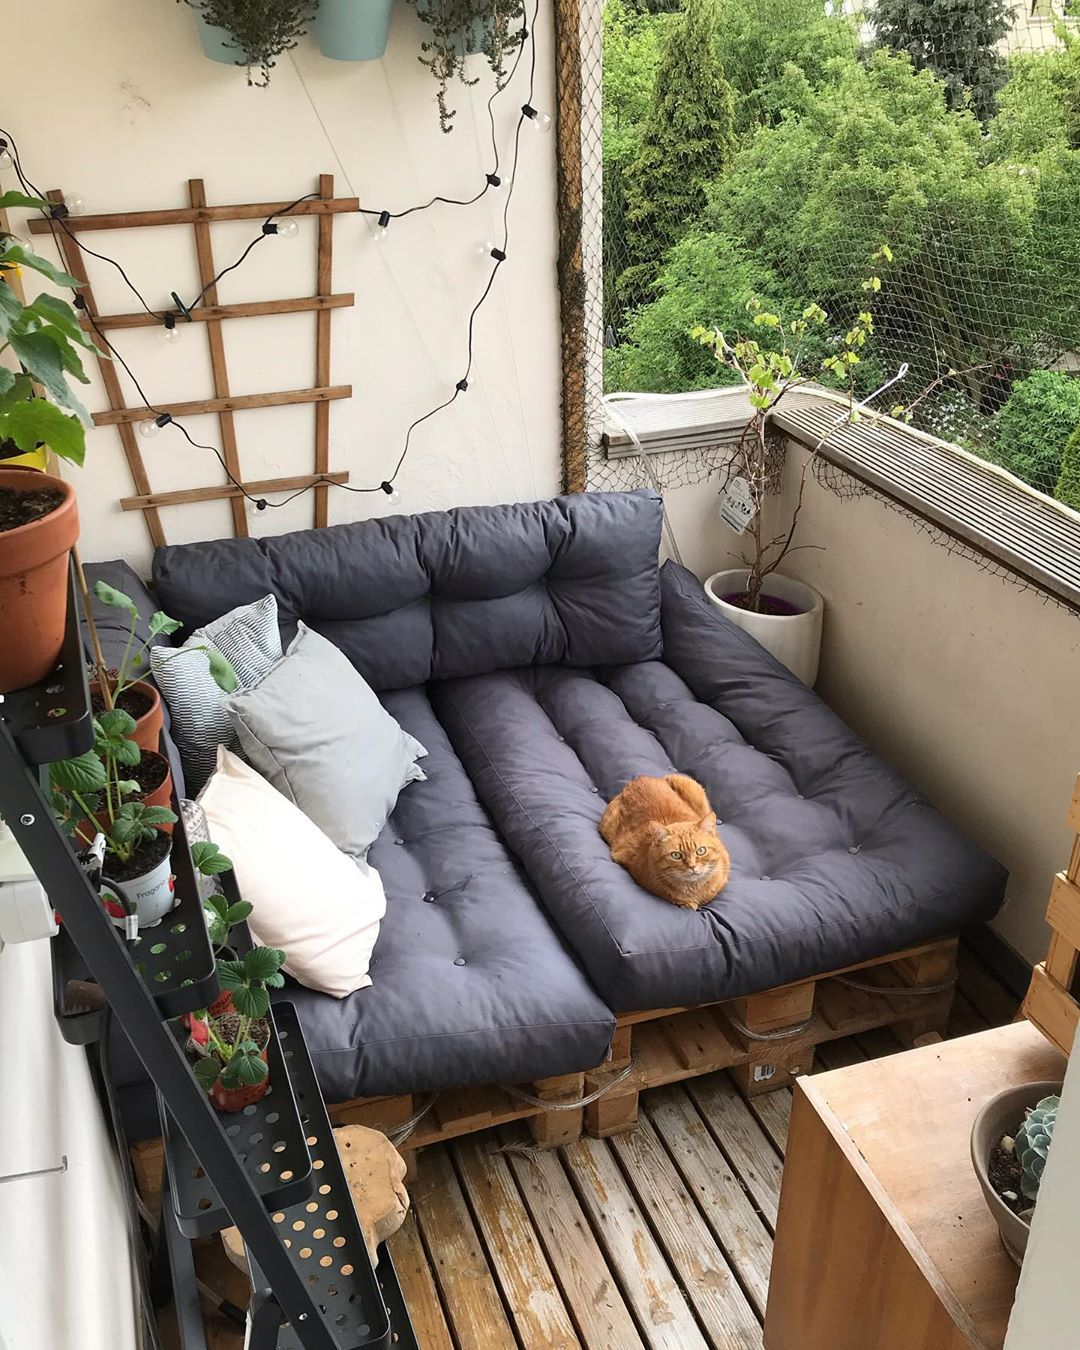 wood pallet day bed // net protected patio to keep kitty